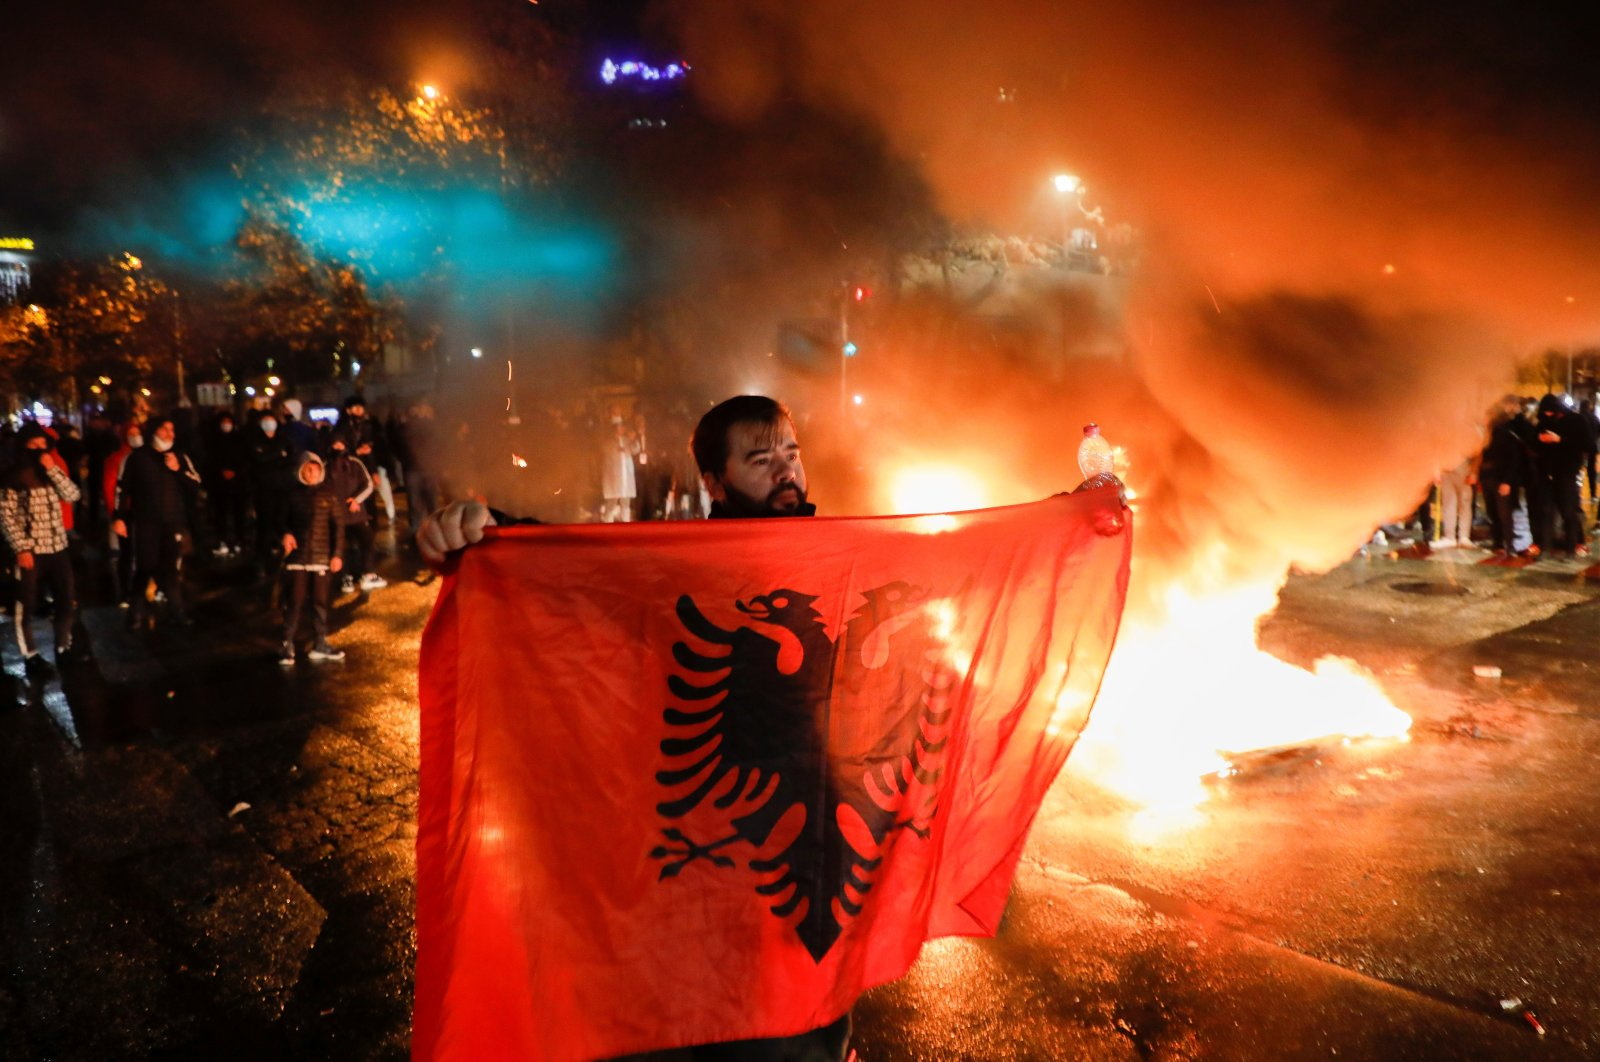 A man holds the Albanian flag as people take part in a demonstration in reaction to the death of Klodian Rasha, after he was shot dead during the country's overnight curfew, in Tirana, Albania, Dec. 10, 2020. (Reuters Photo)